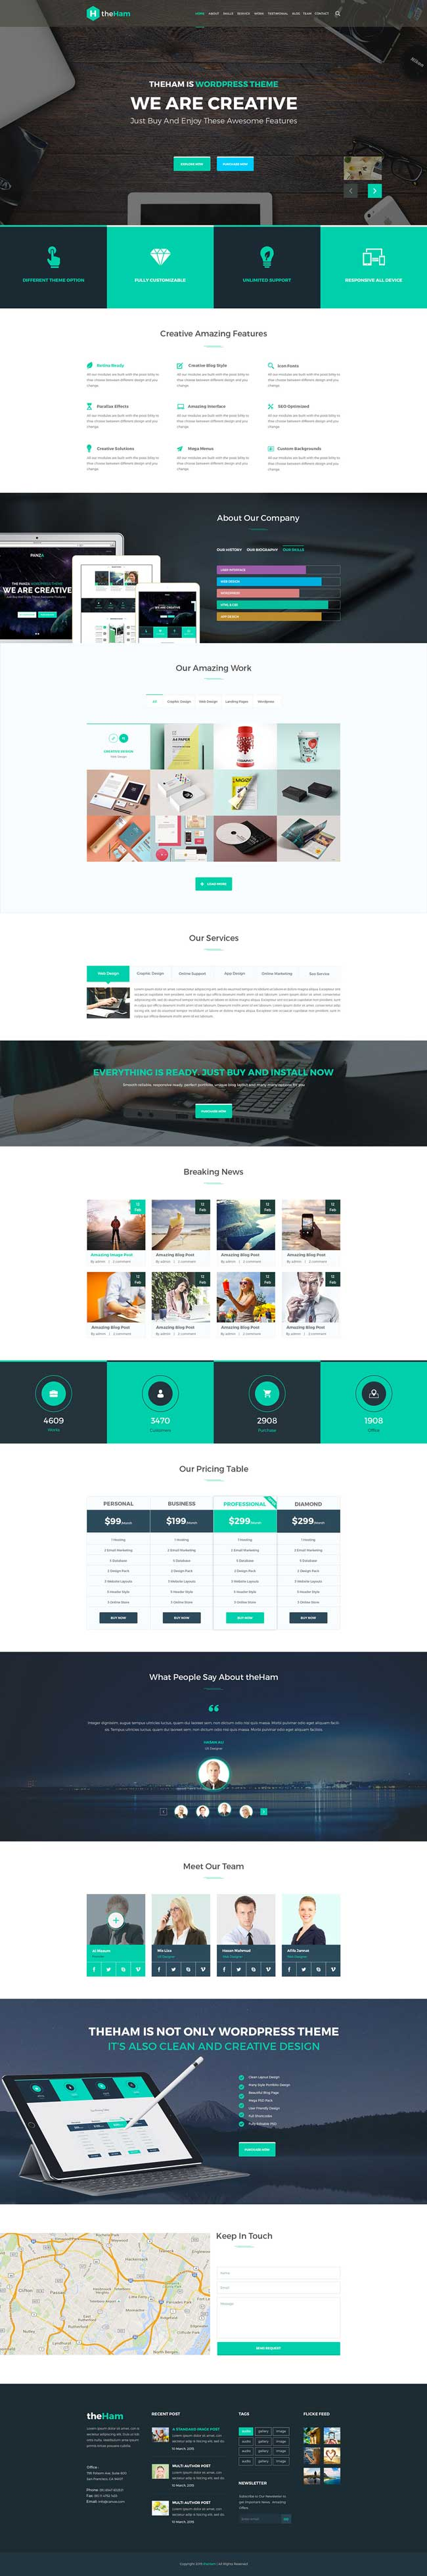 theHam-Free-Creative-Landing-Page-PSD-Template